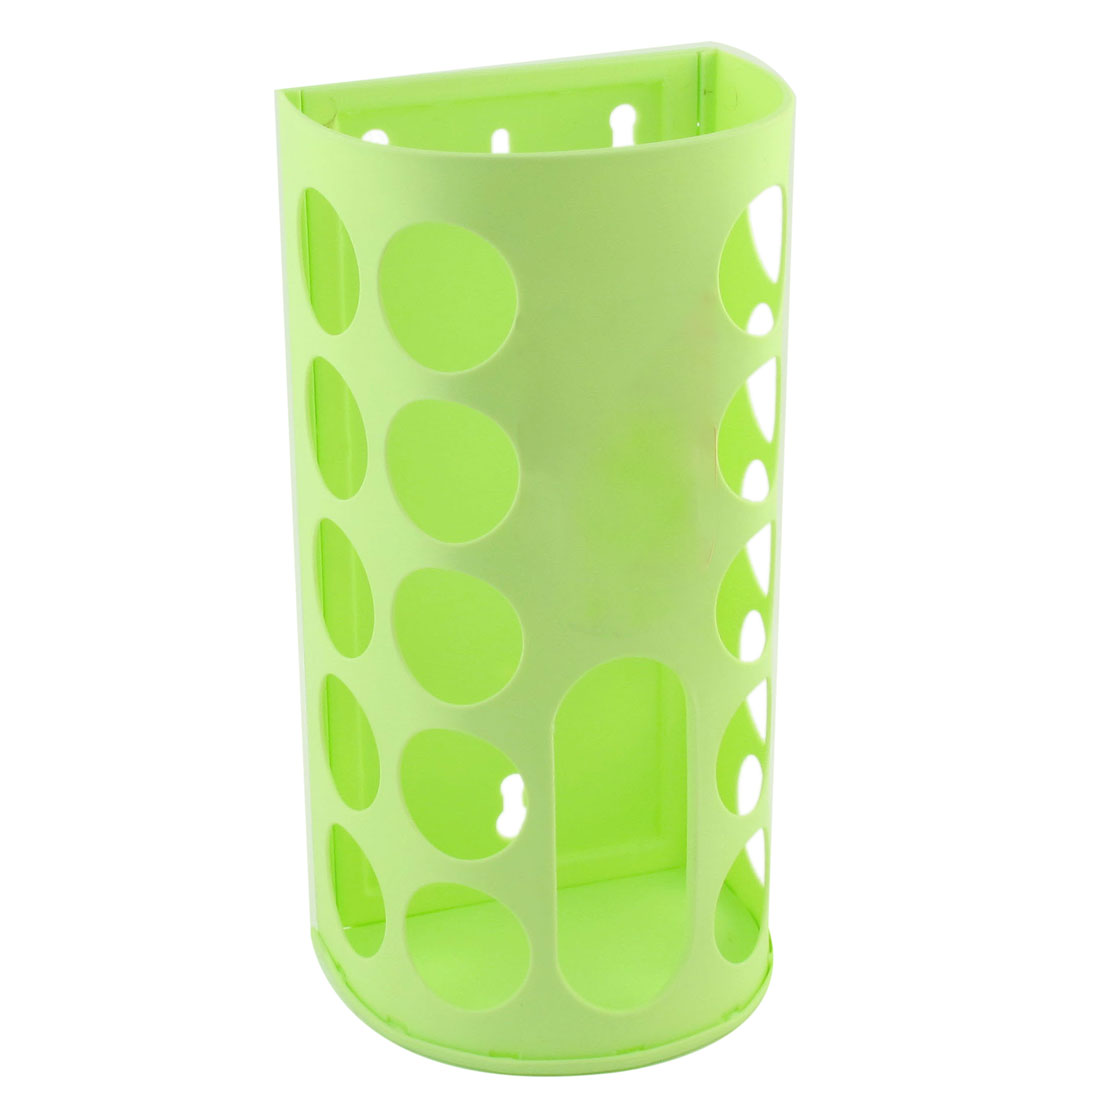 Household Portable Plastic Bag Extraction Storage Box Case Holder Lime